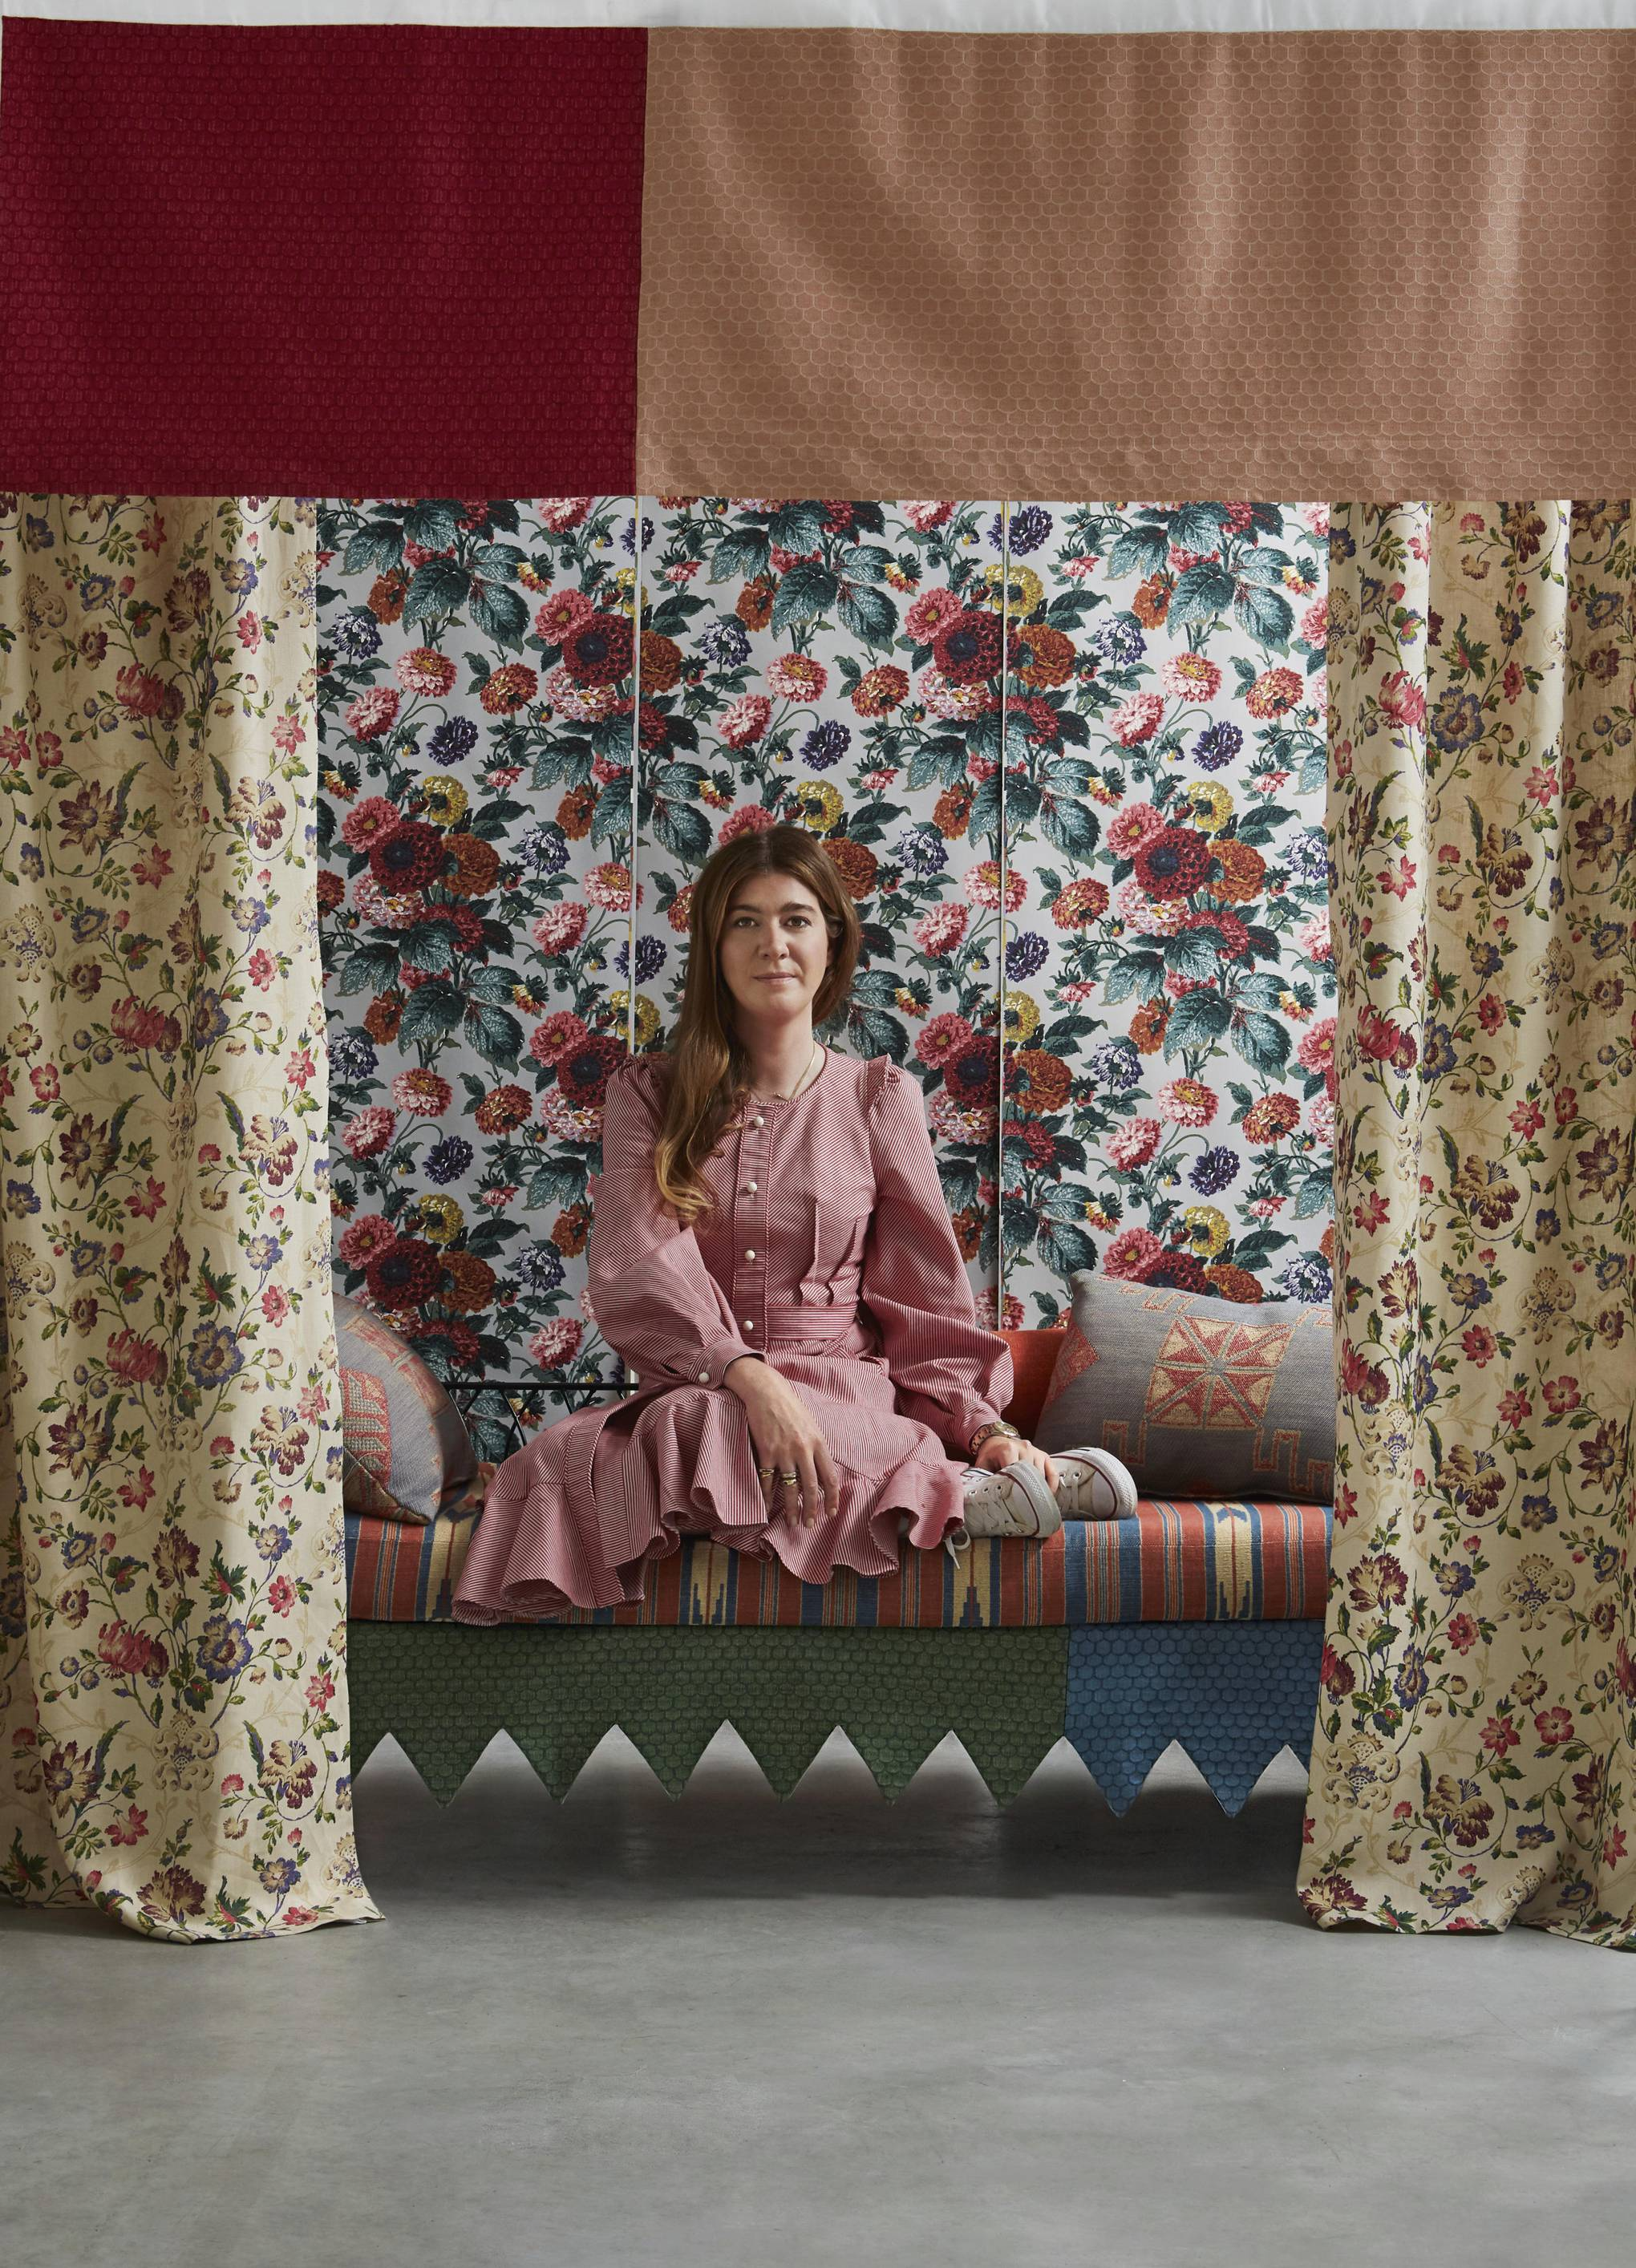 Flora Soames' debut fabric collection is inspired by her archive of antique textiles